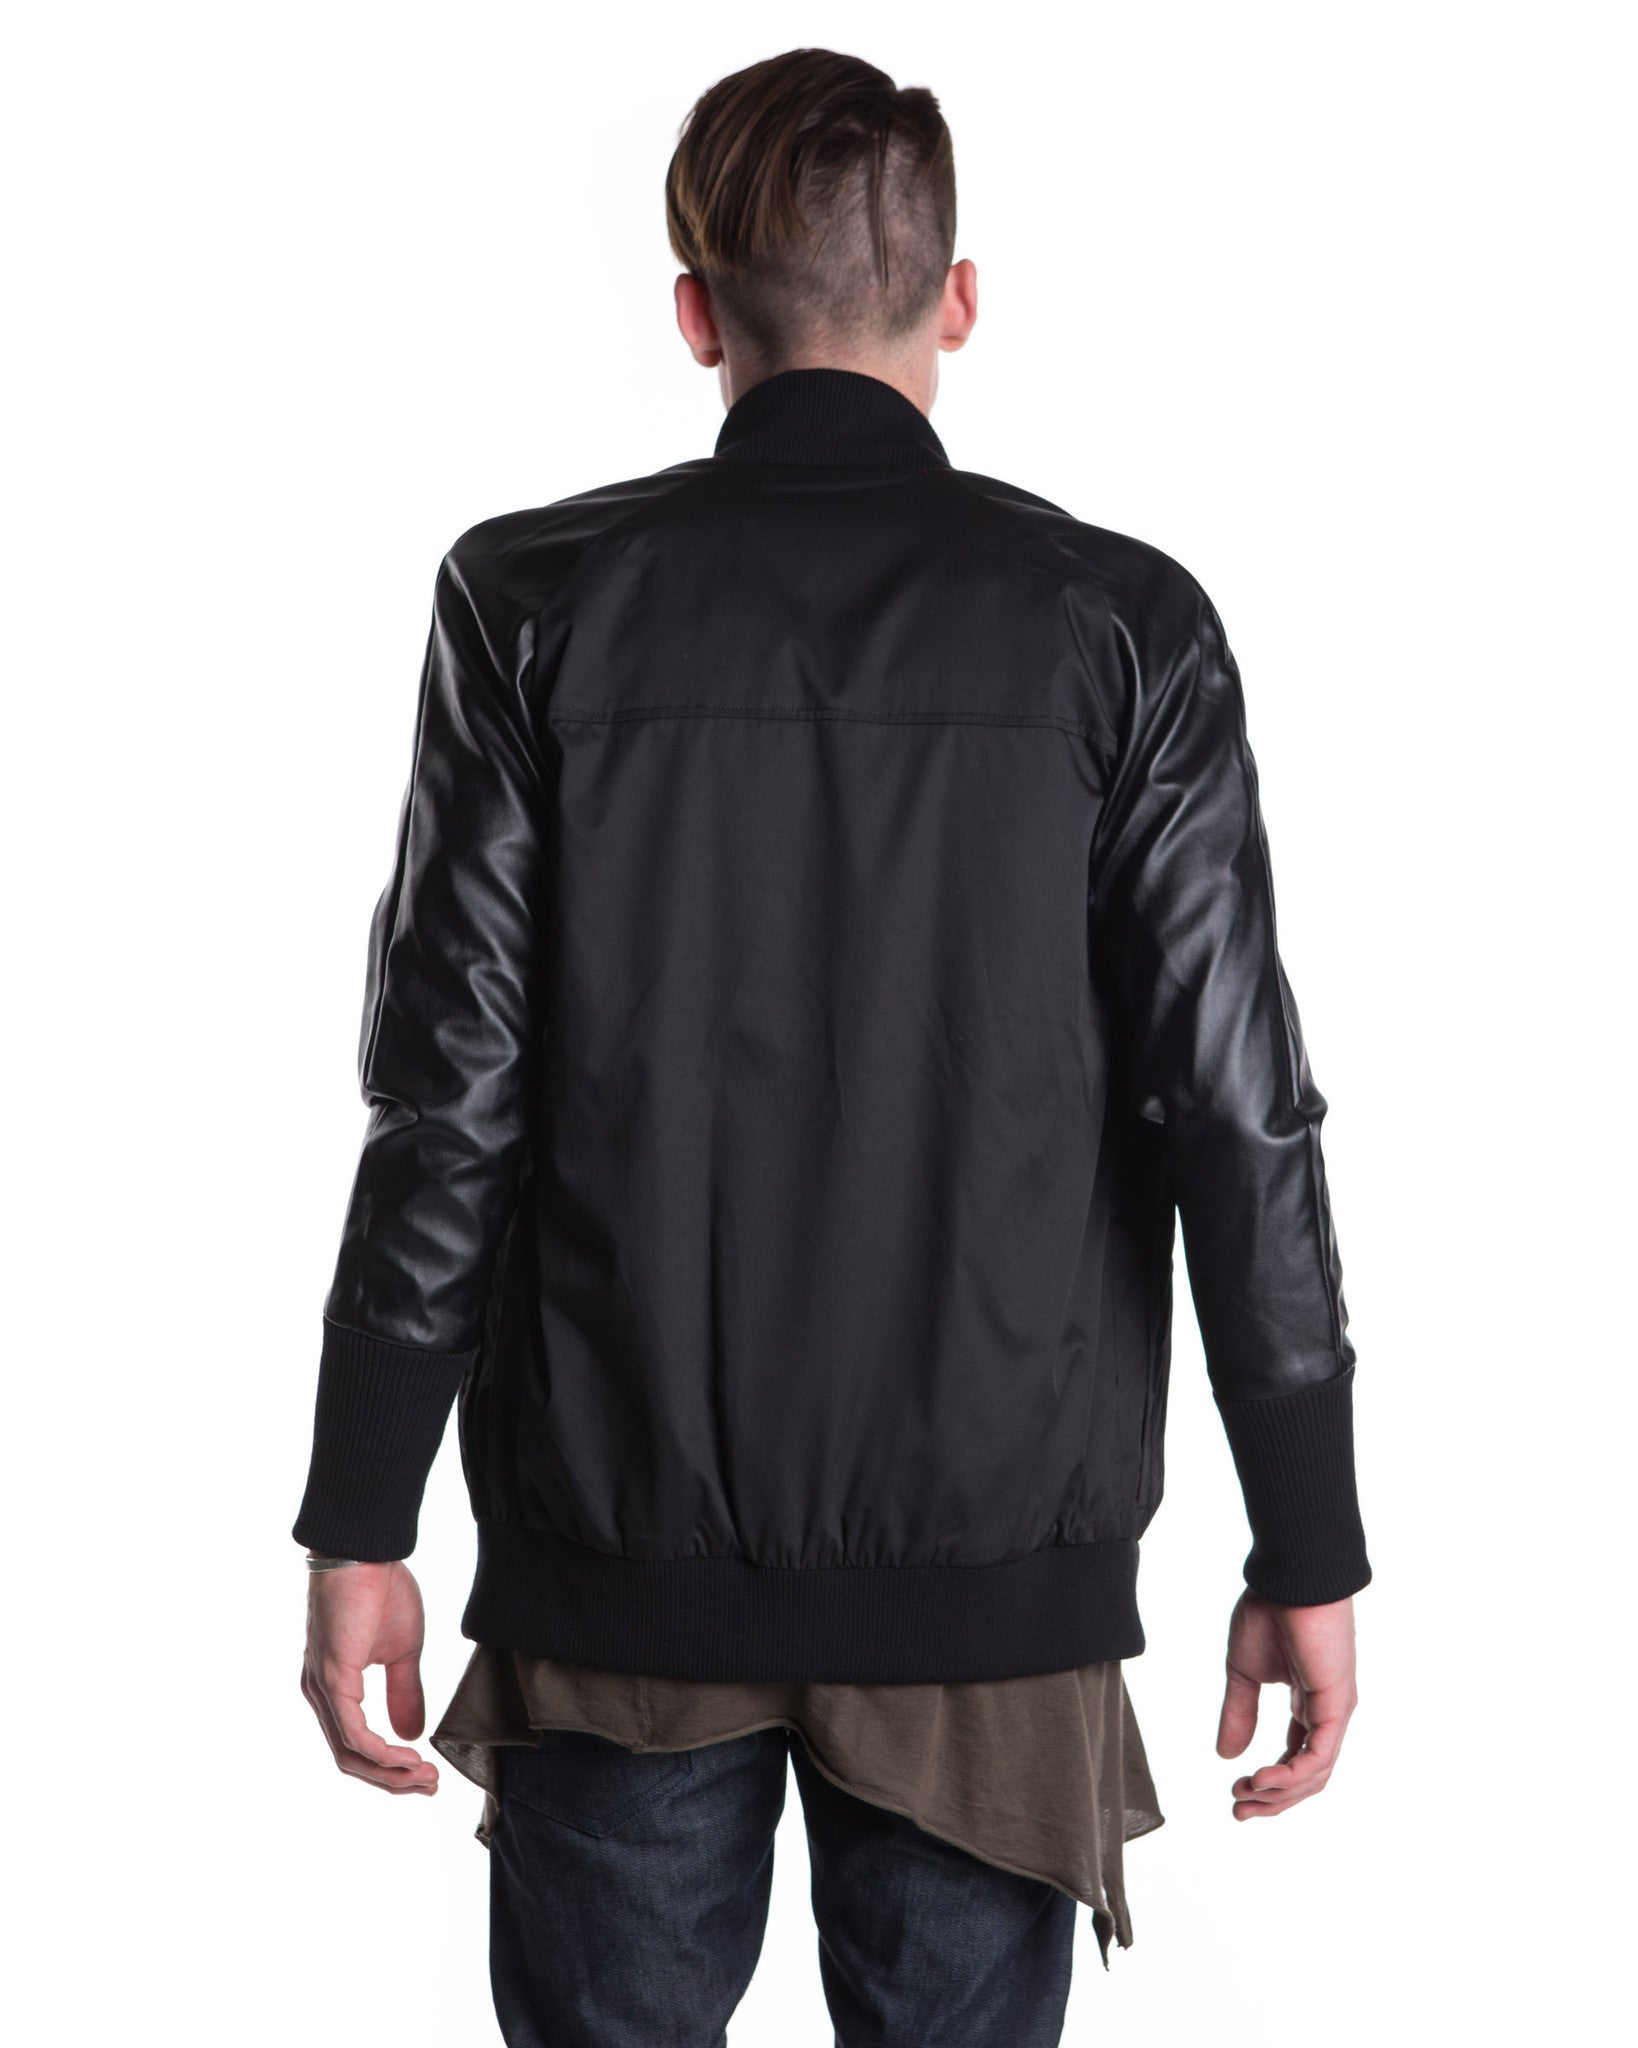 Tonal Varsity Jacket (Black)